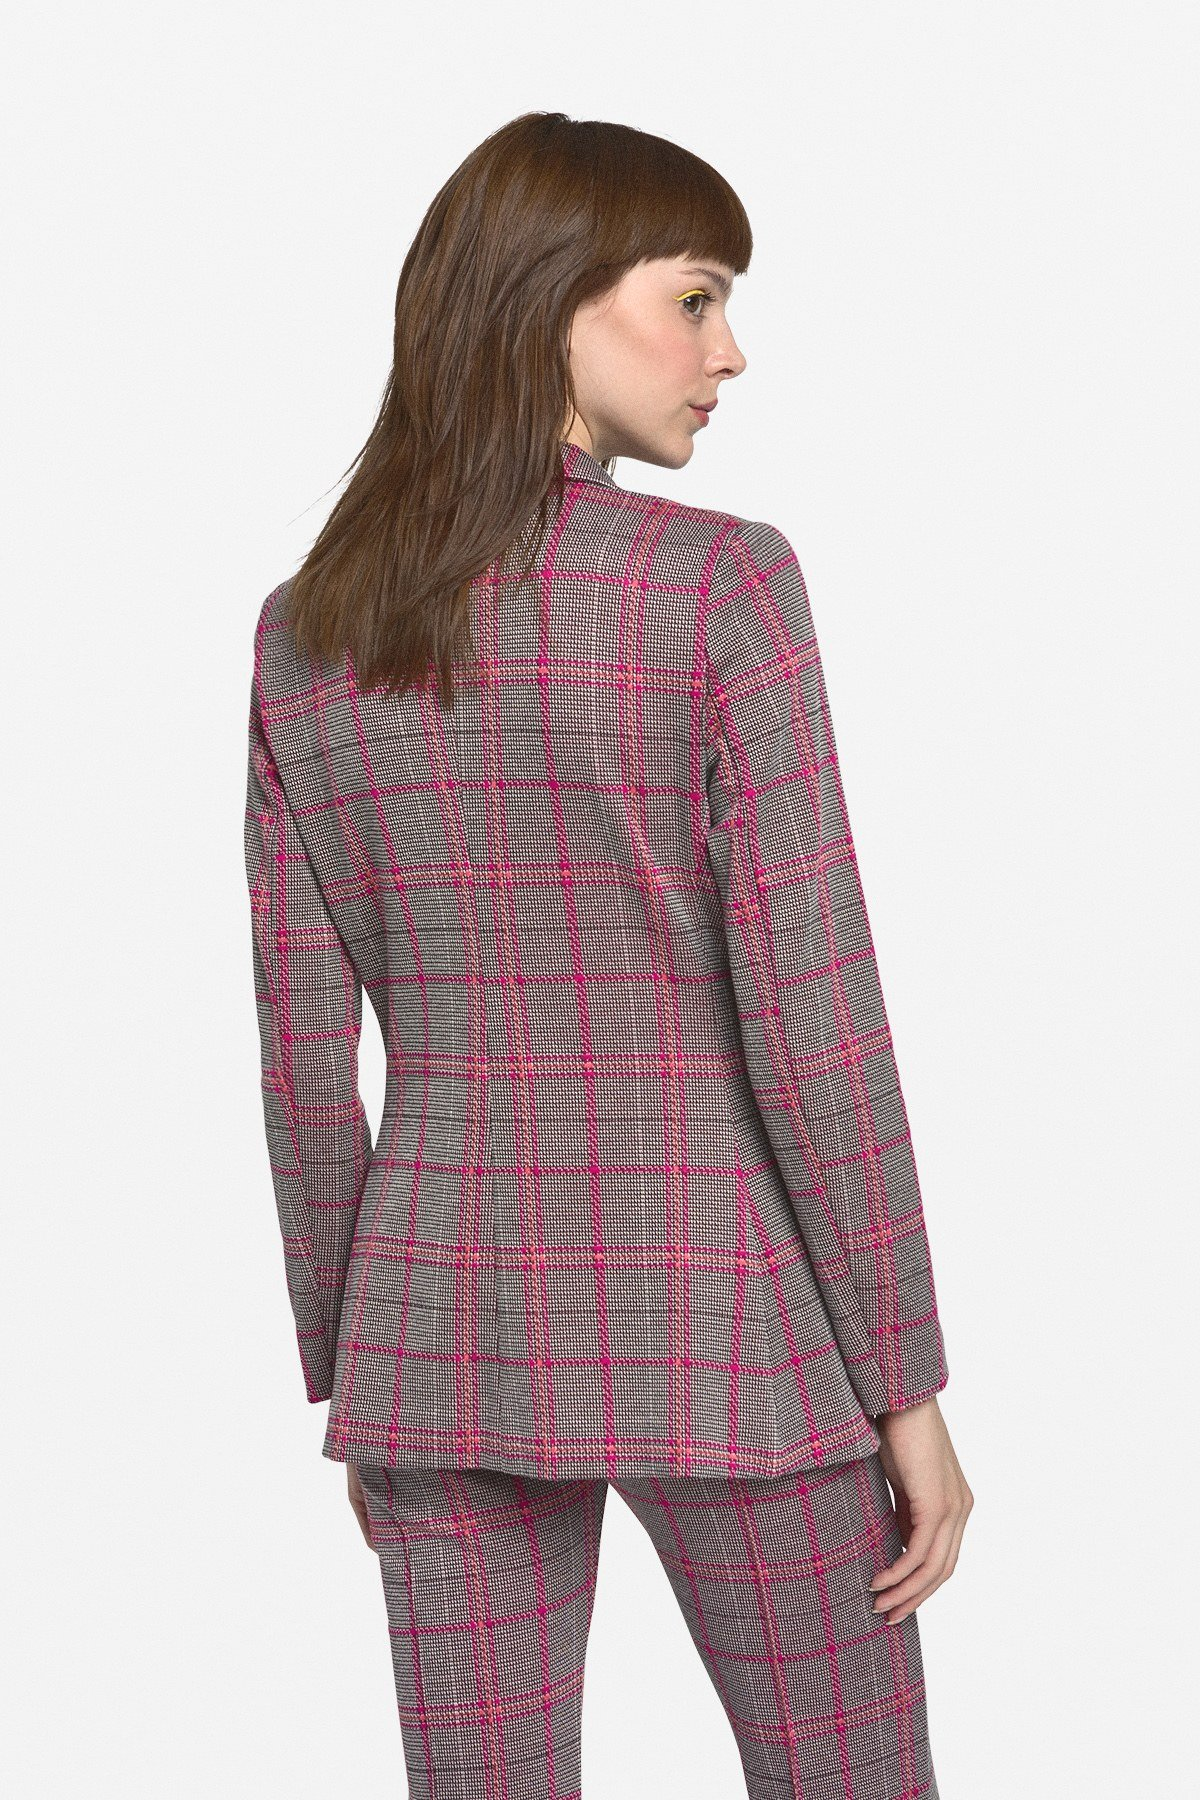 3 buttons' patterned jacket